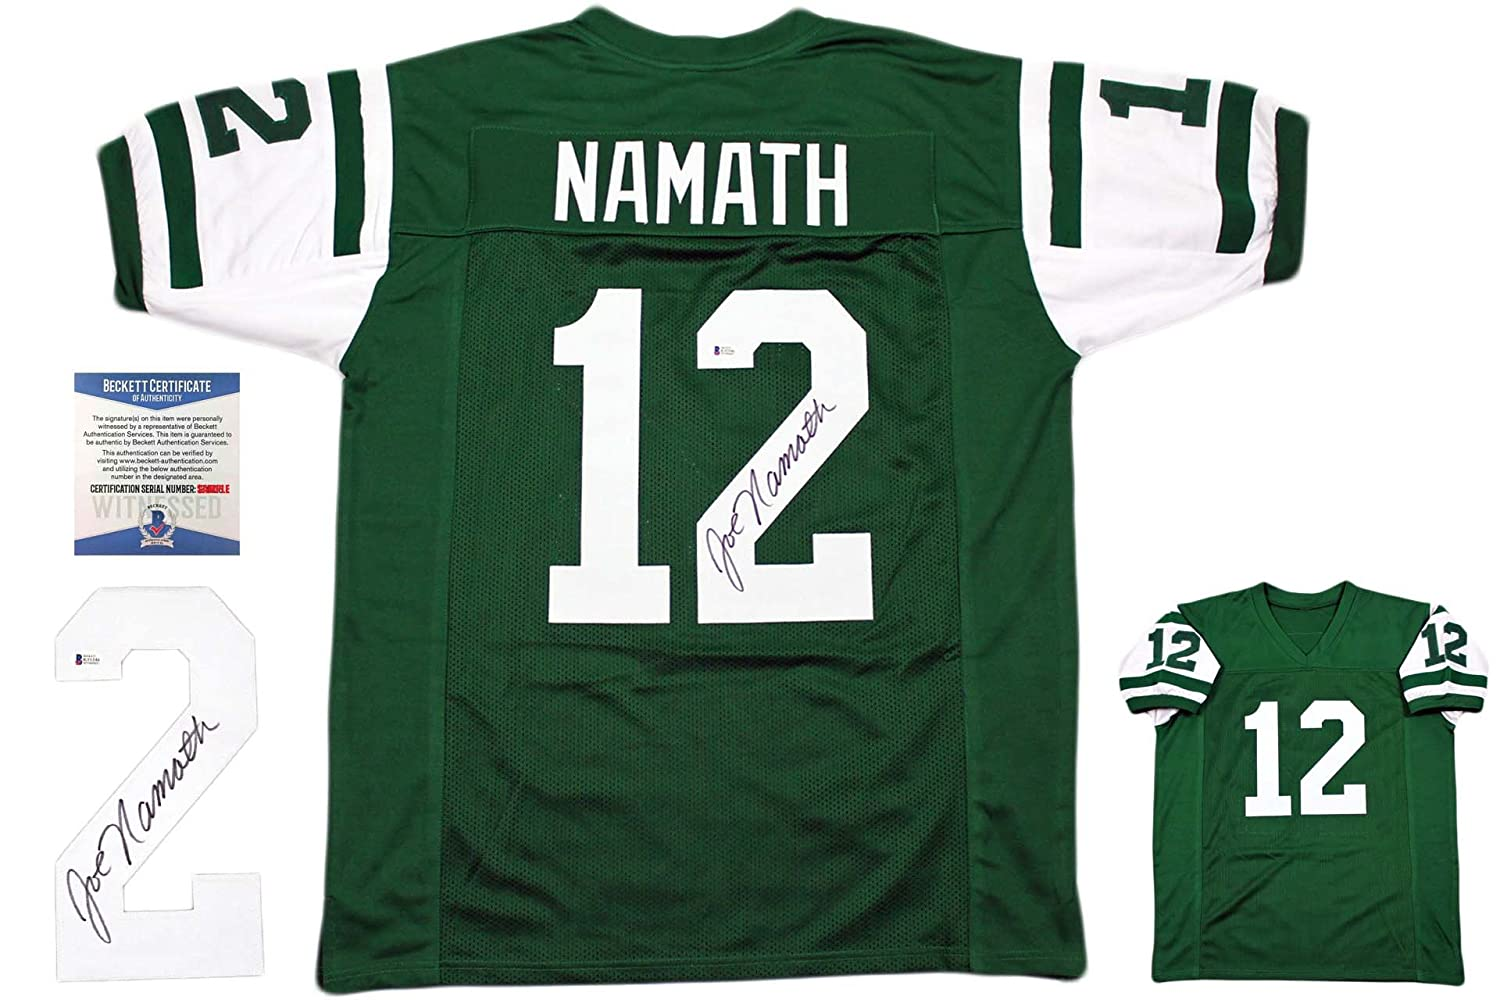 955d62a4 Joe Namath Autographed Signed Jersey - Beckett Authentic - Green at ...